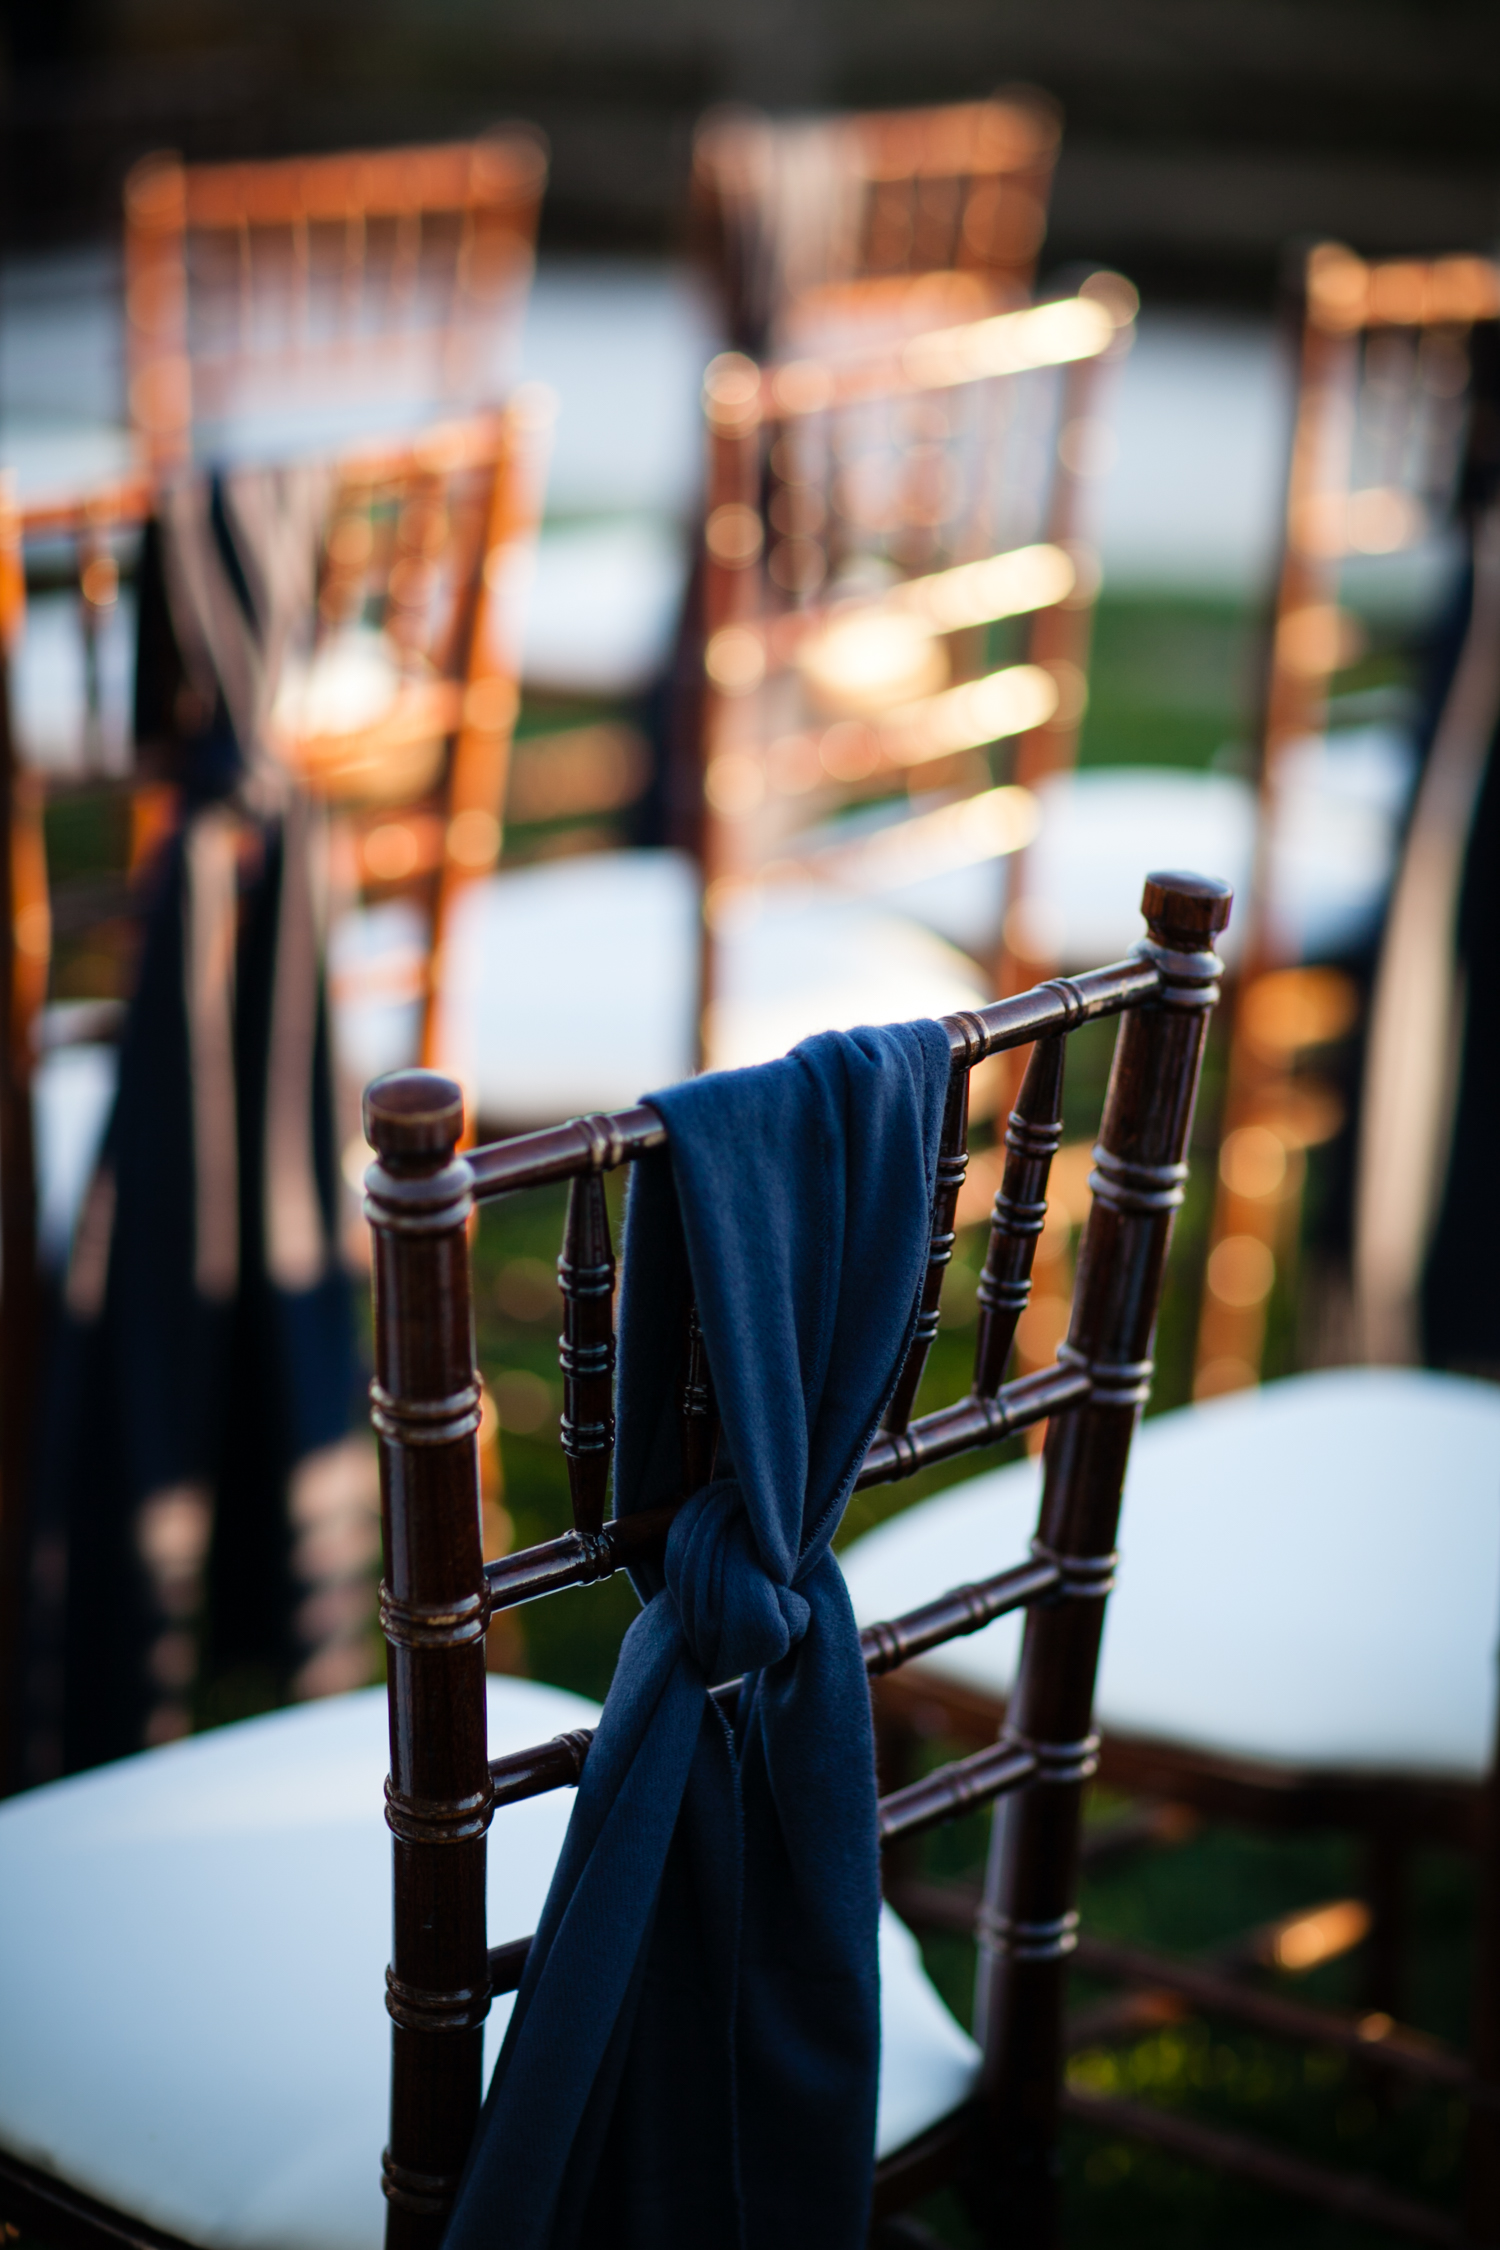 magnoliaeventdesign.com | Bacara Resort and Spa Wedding Photographed by Miki and Sonja Photography | Magnolia Event Design | Santa Barbara Wedding Planner